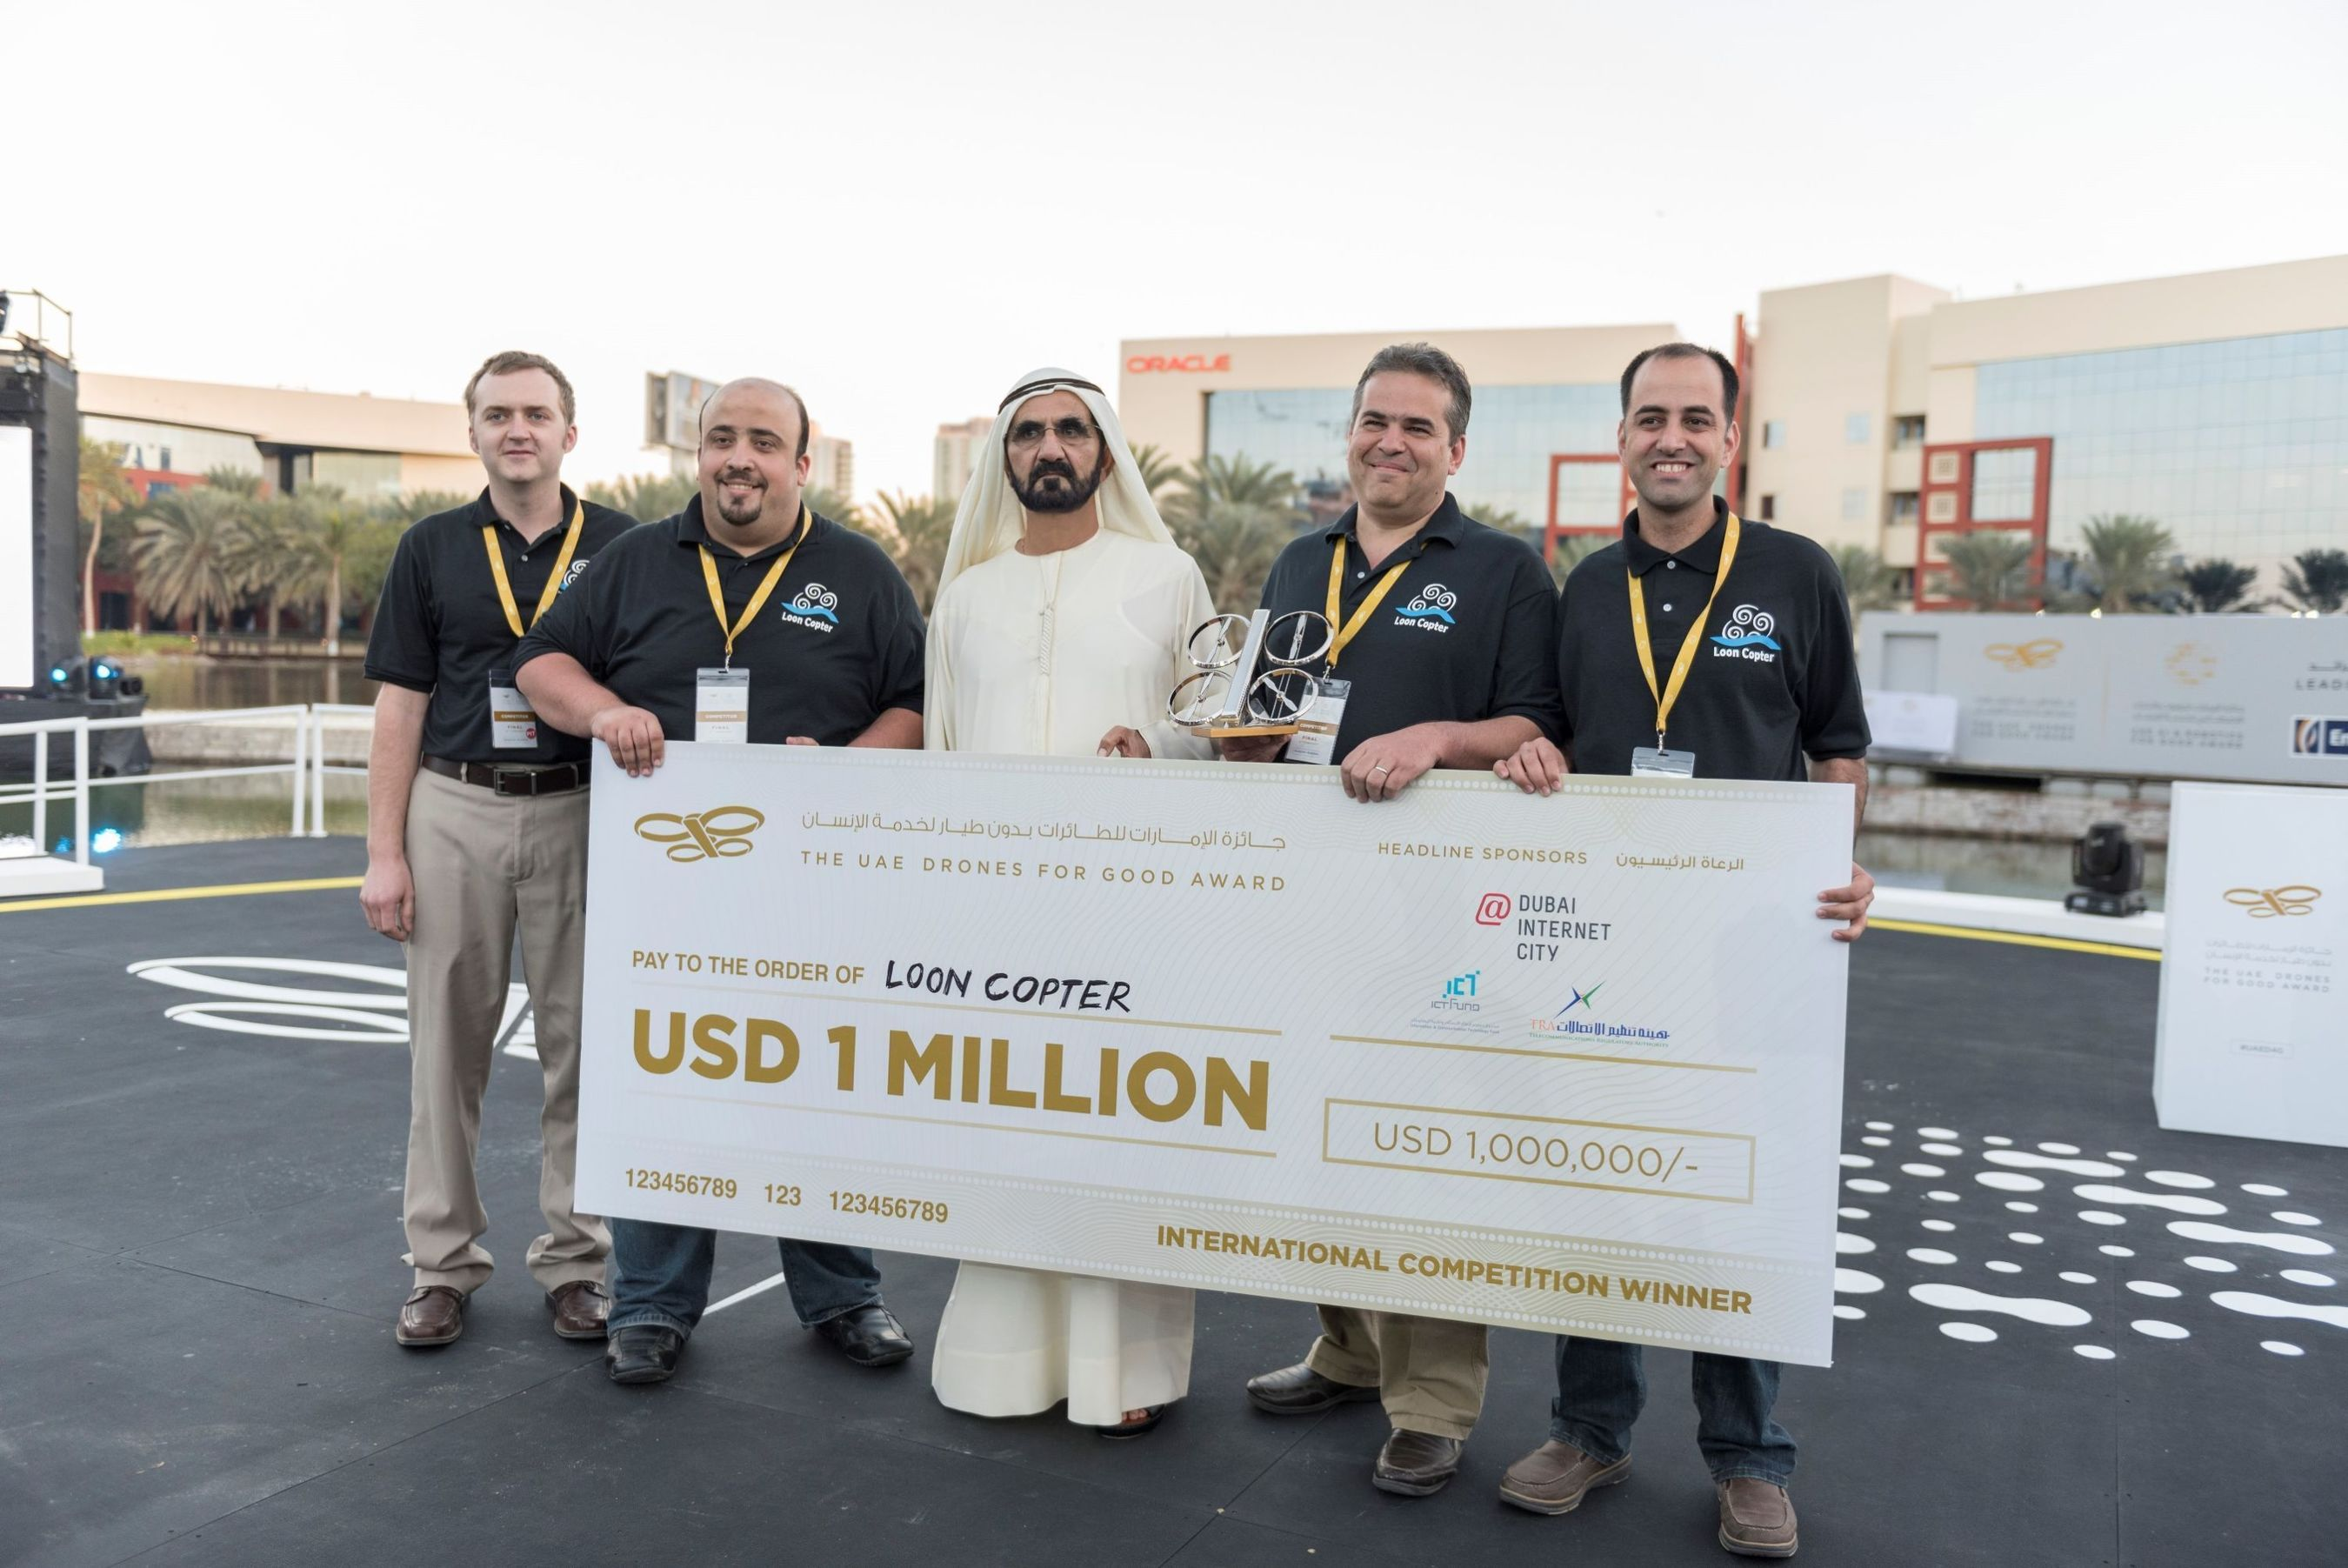 US$ 2 Million 'UAE Drones for Good Award' and 'UAE AI & Robotics Award for Good' Declare Winners